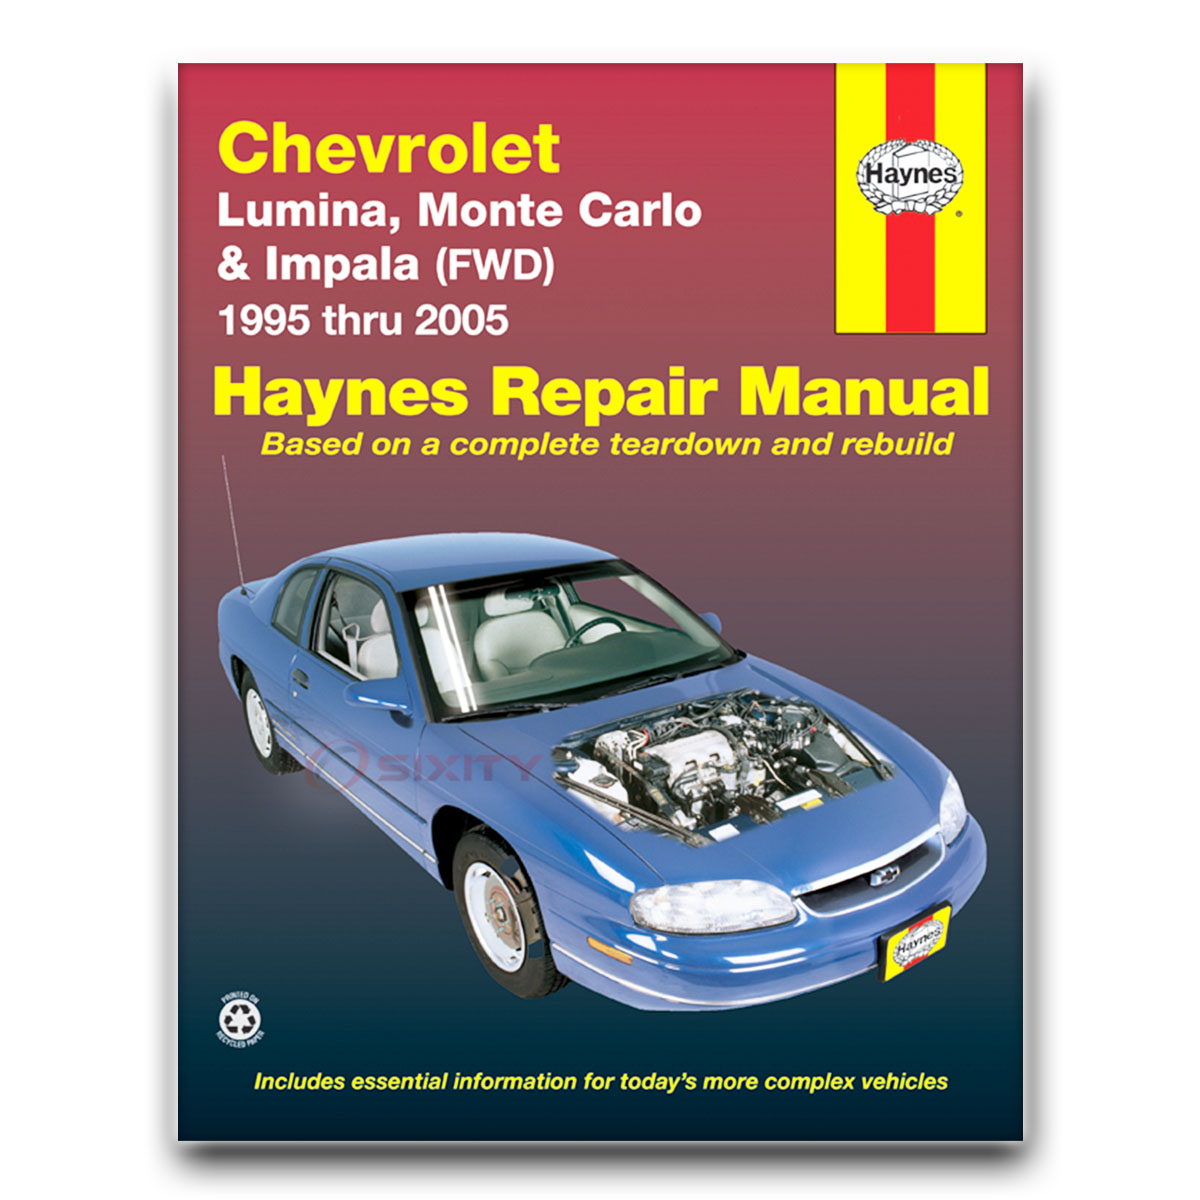 chevy impala haynes repair manual ls sport base ss shop service rh ebay com 2004 chevy impala manual 2004 chevy impala manual-release plunger, key